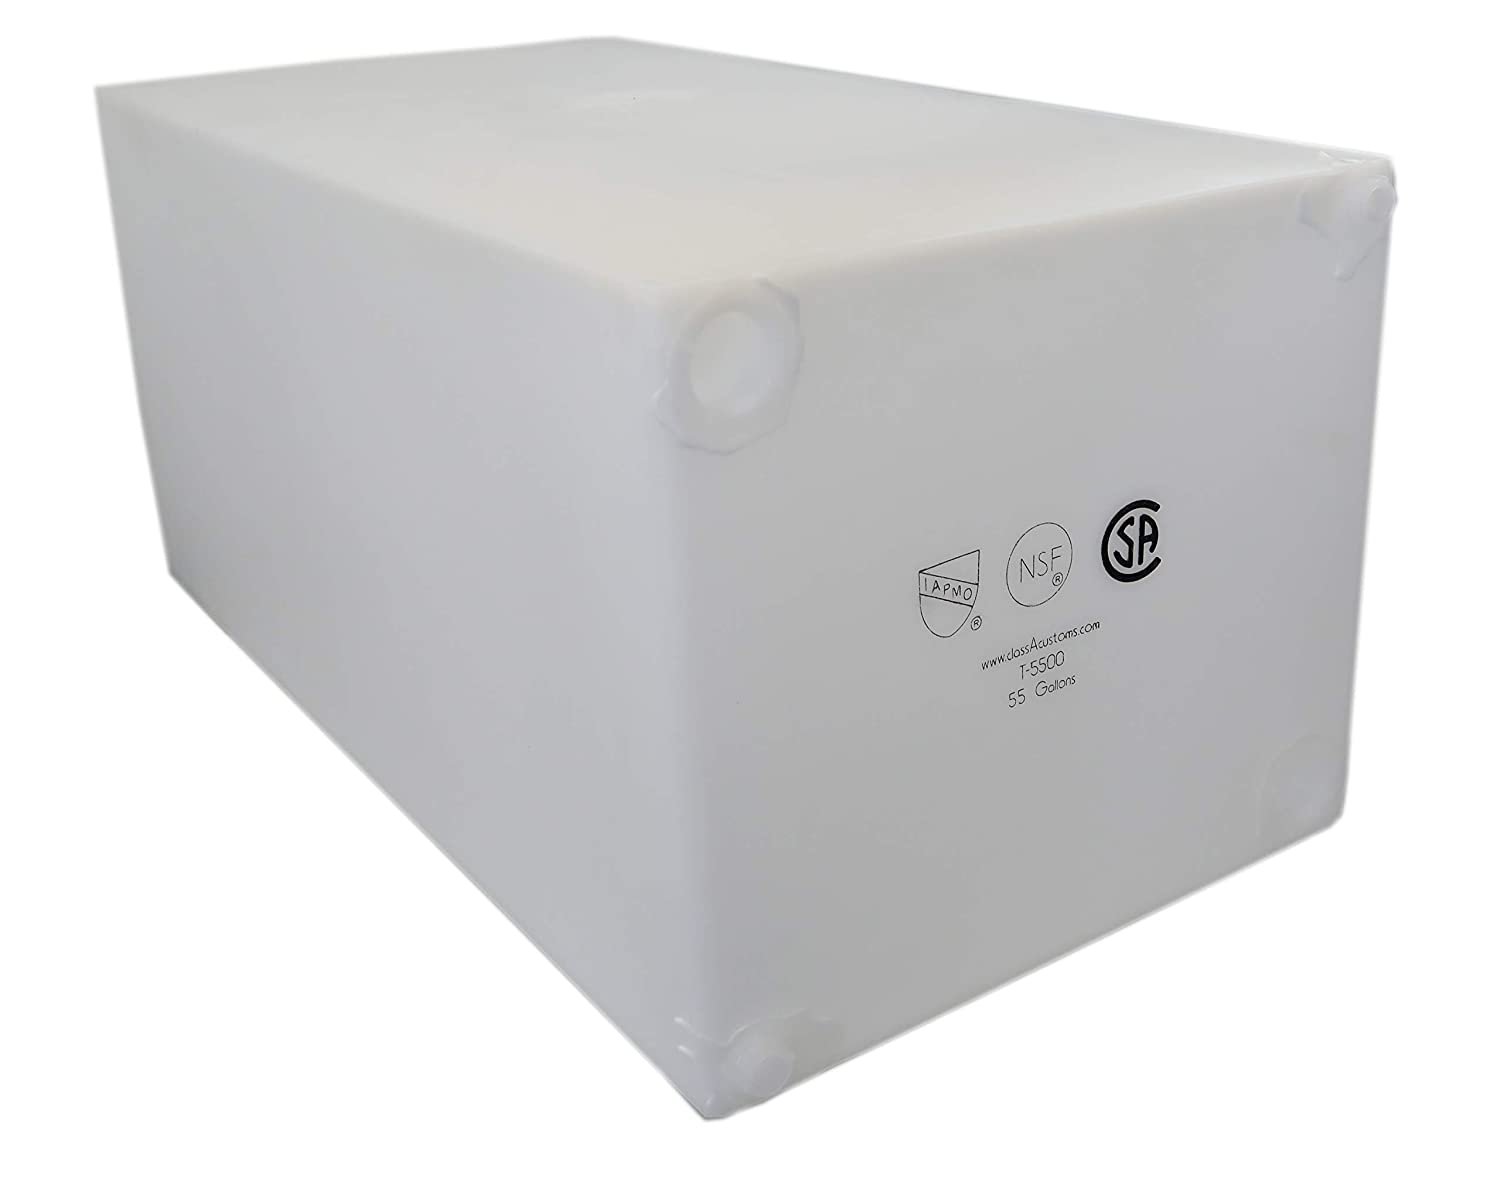 Class A Customs 55 Gallon Fresh Water Holding Tank NSF/FDA Approved BPA Free T-5500